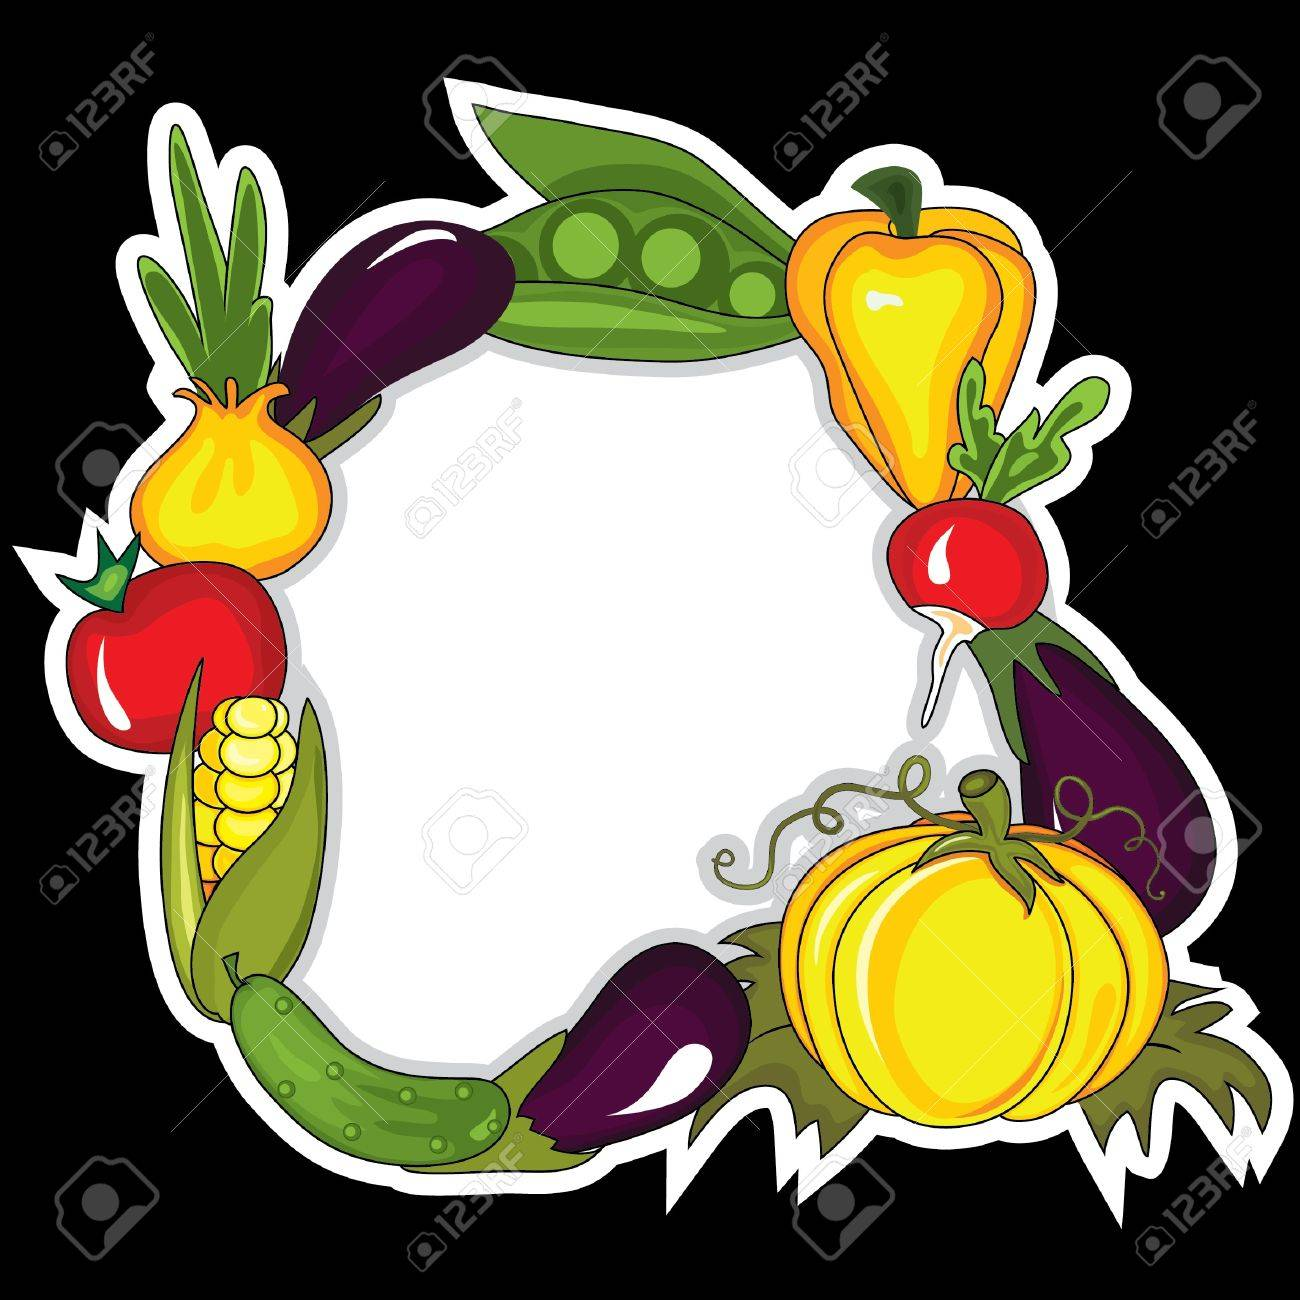 Abstract vegetables background.  Place for your text Stock Vector - 10049612